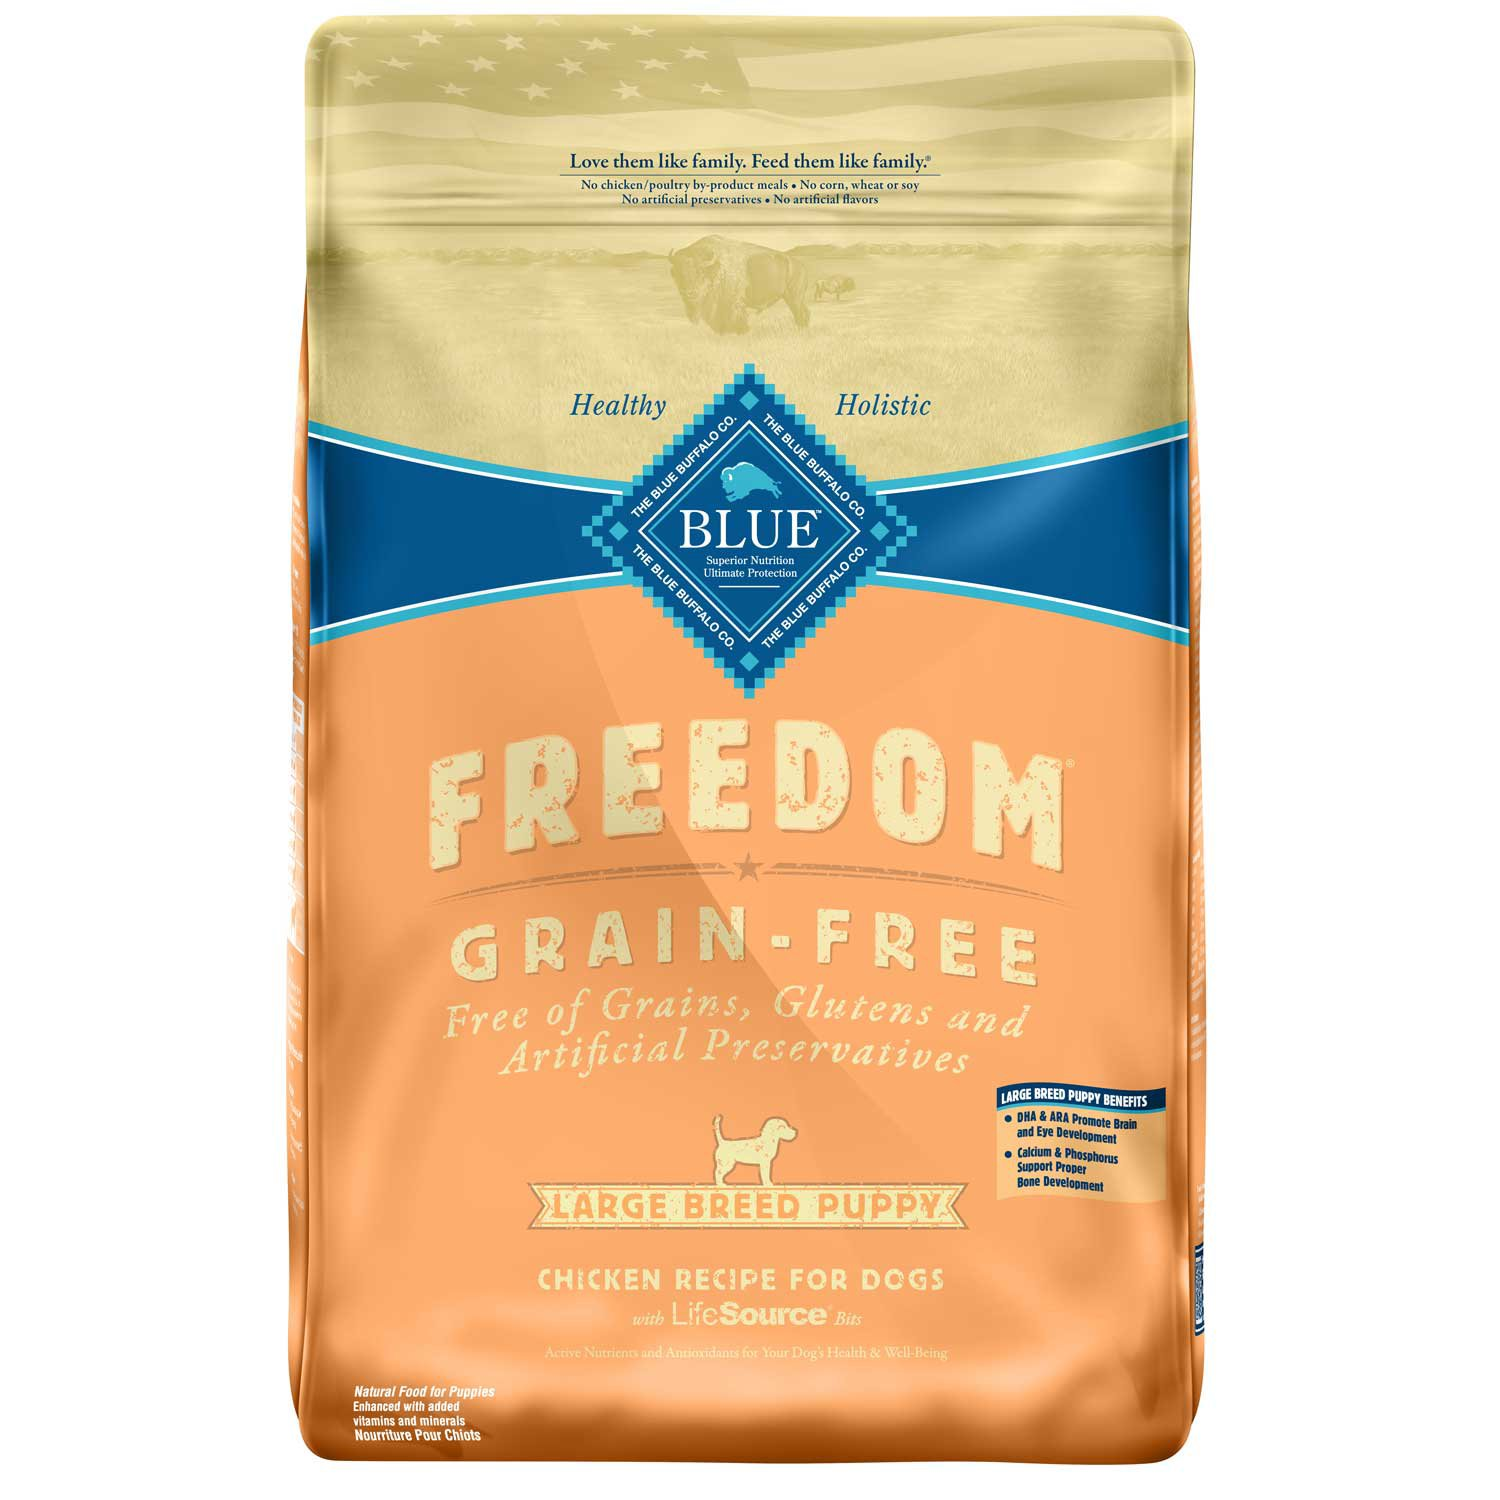 Authority Dog Food Grain Free Reviews